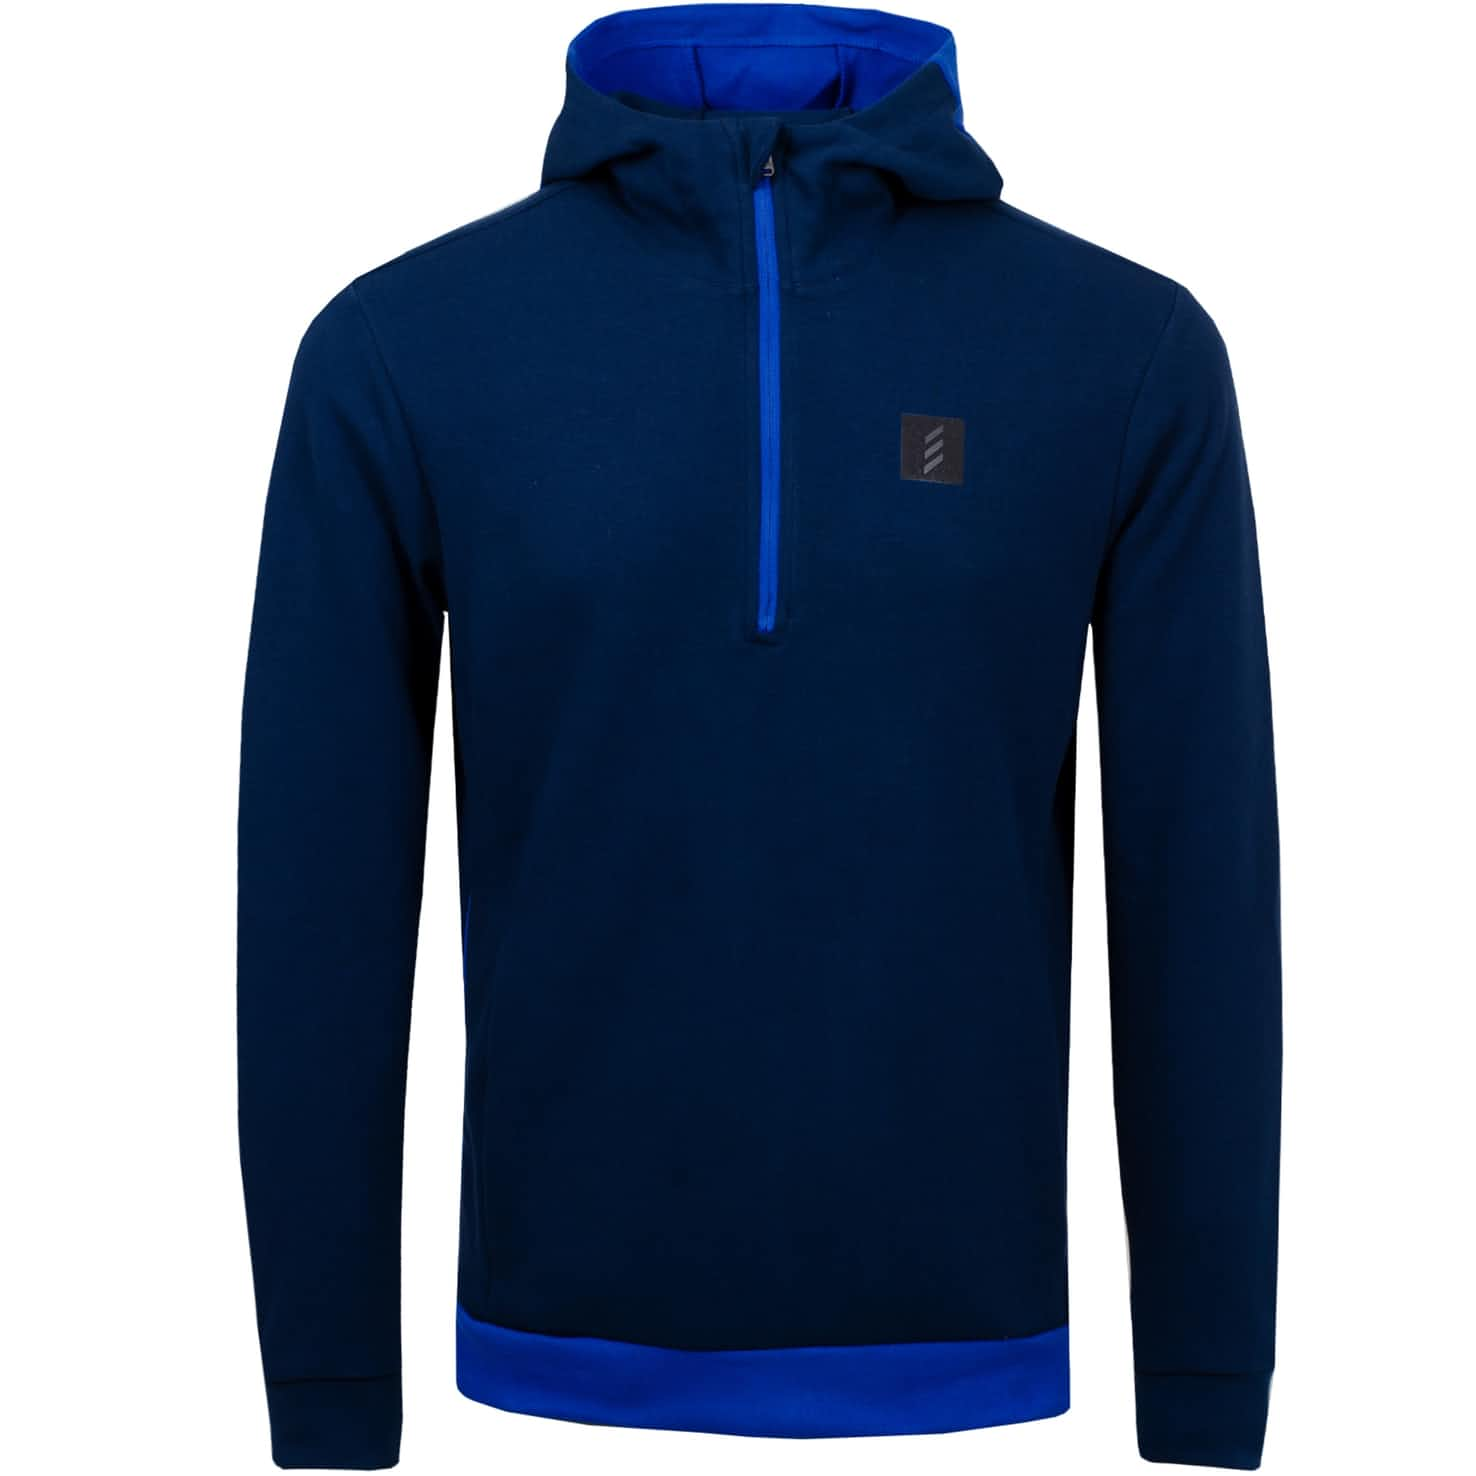 Adicross Quarter Zip Hoodie Team Royal Blue - SS20